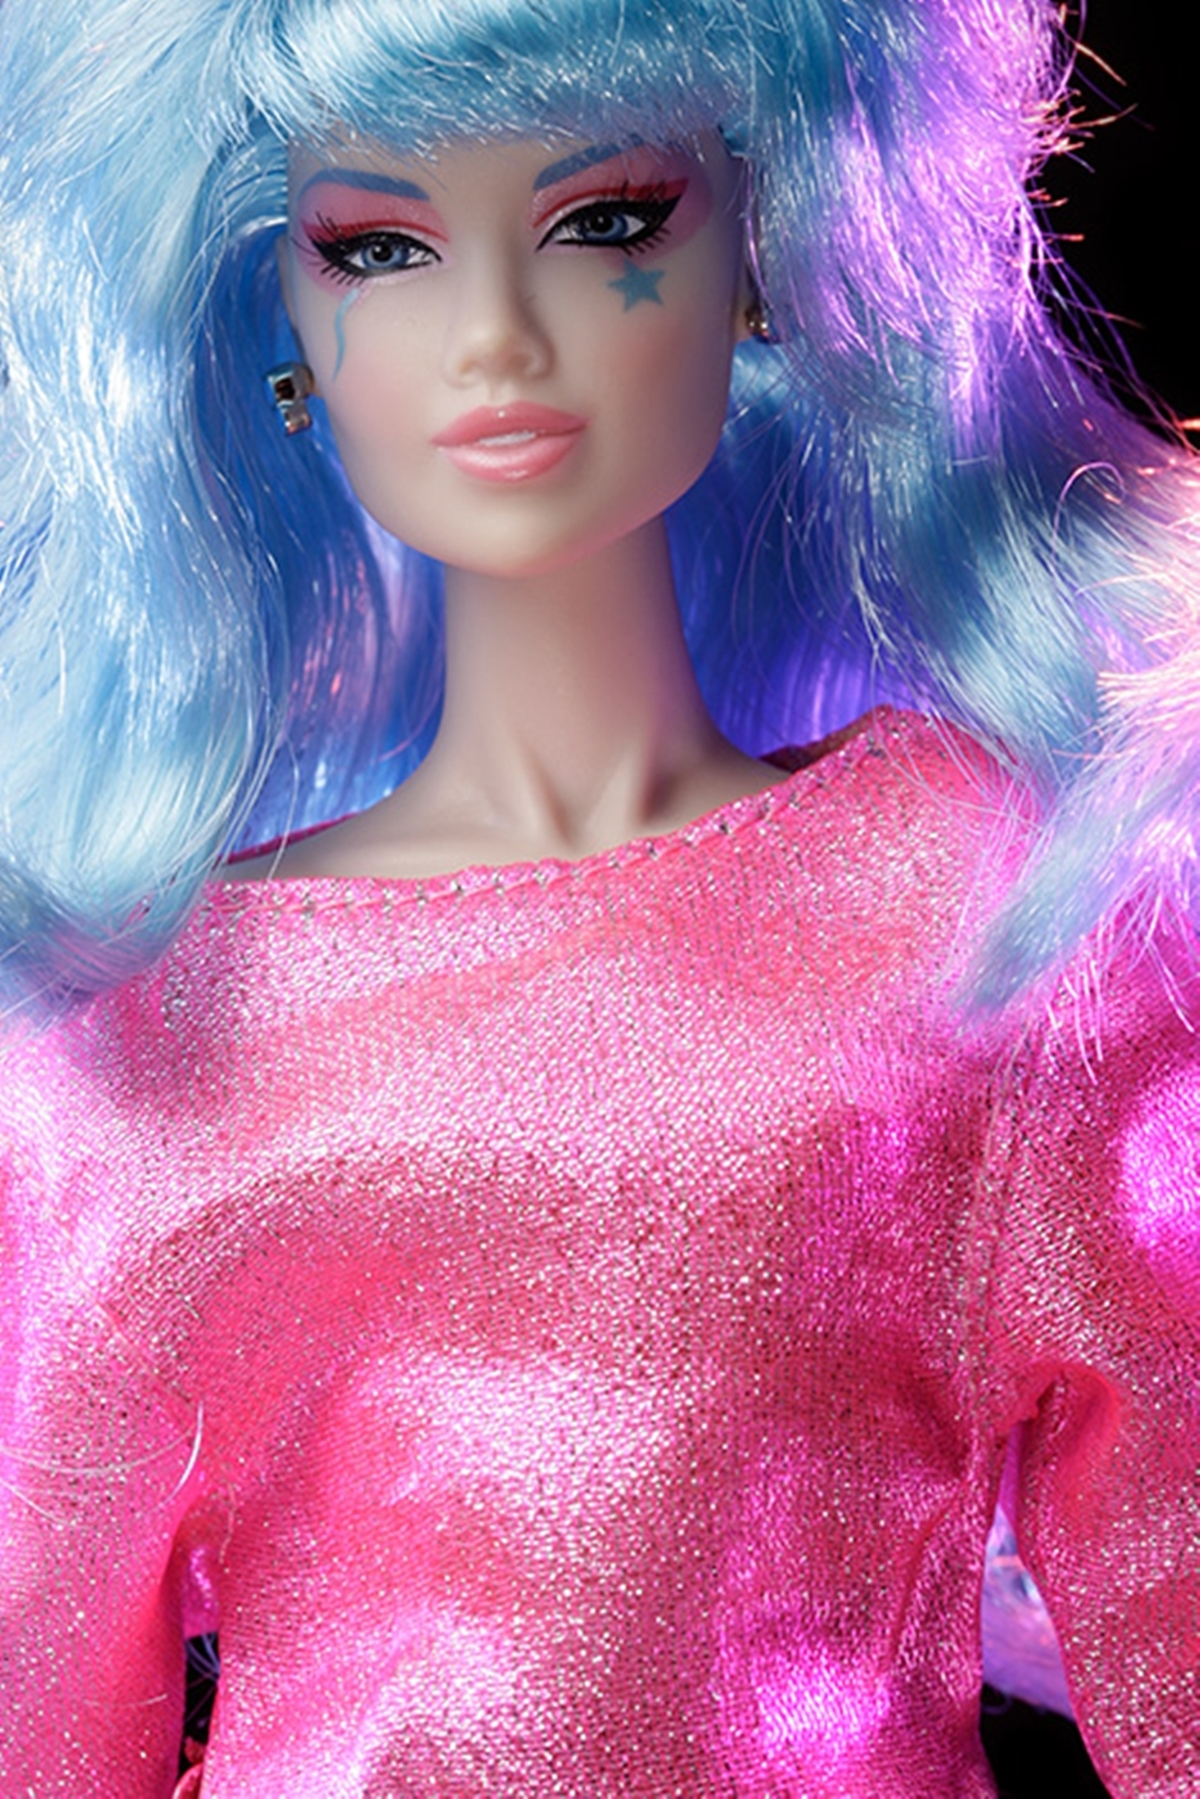 JEM 10 Toys From Our Childhood That Are Now Worth A Lot Of Money